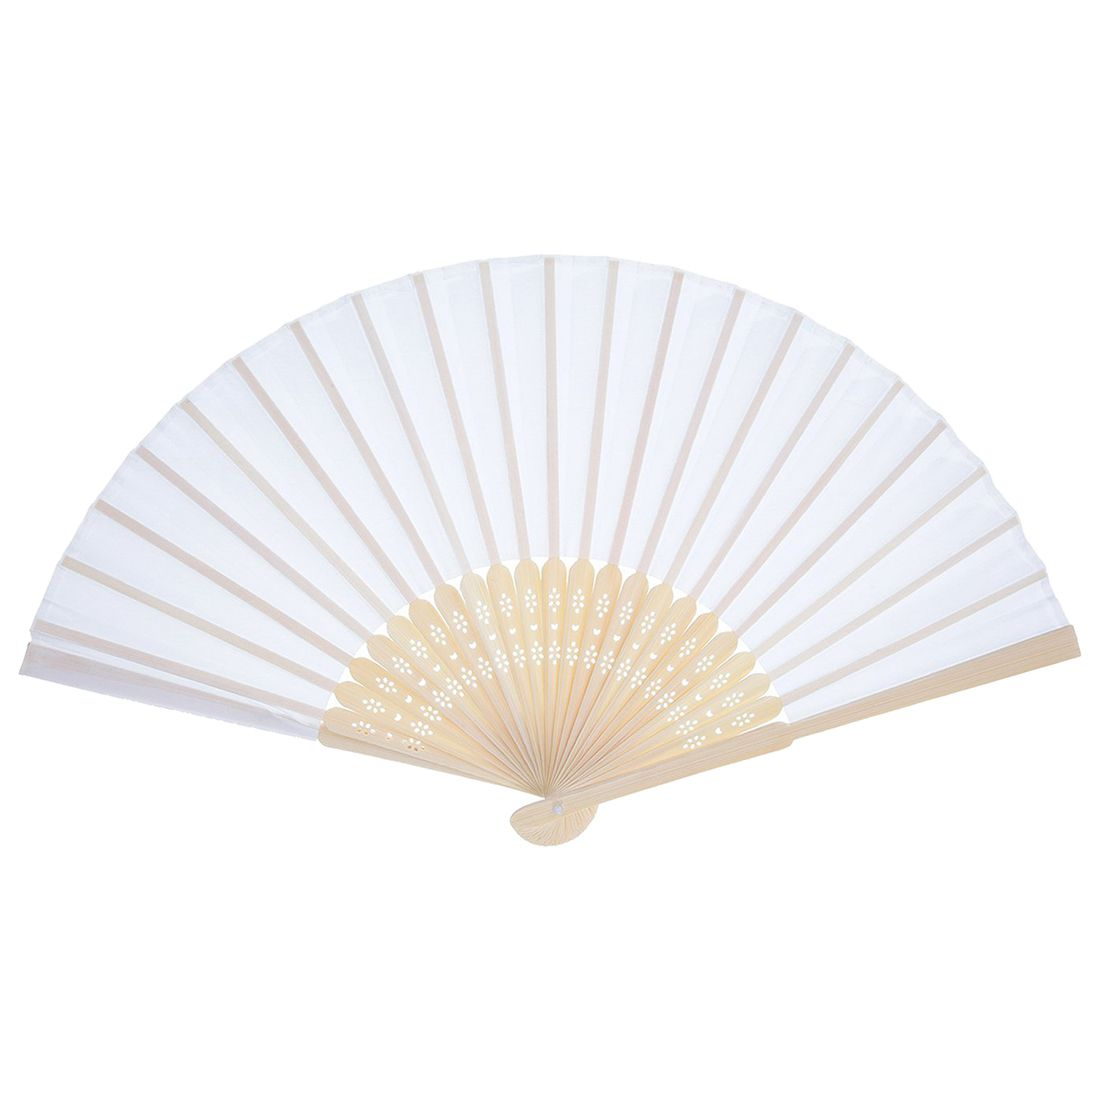 12 Pack Hand Held Fans White Silk Bamboo Folding Fans Handheld ...